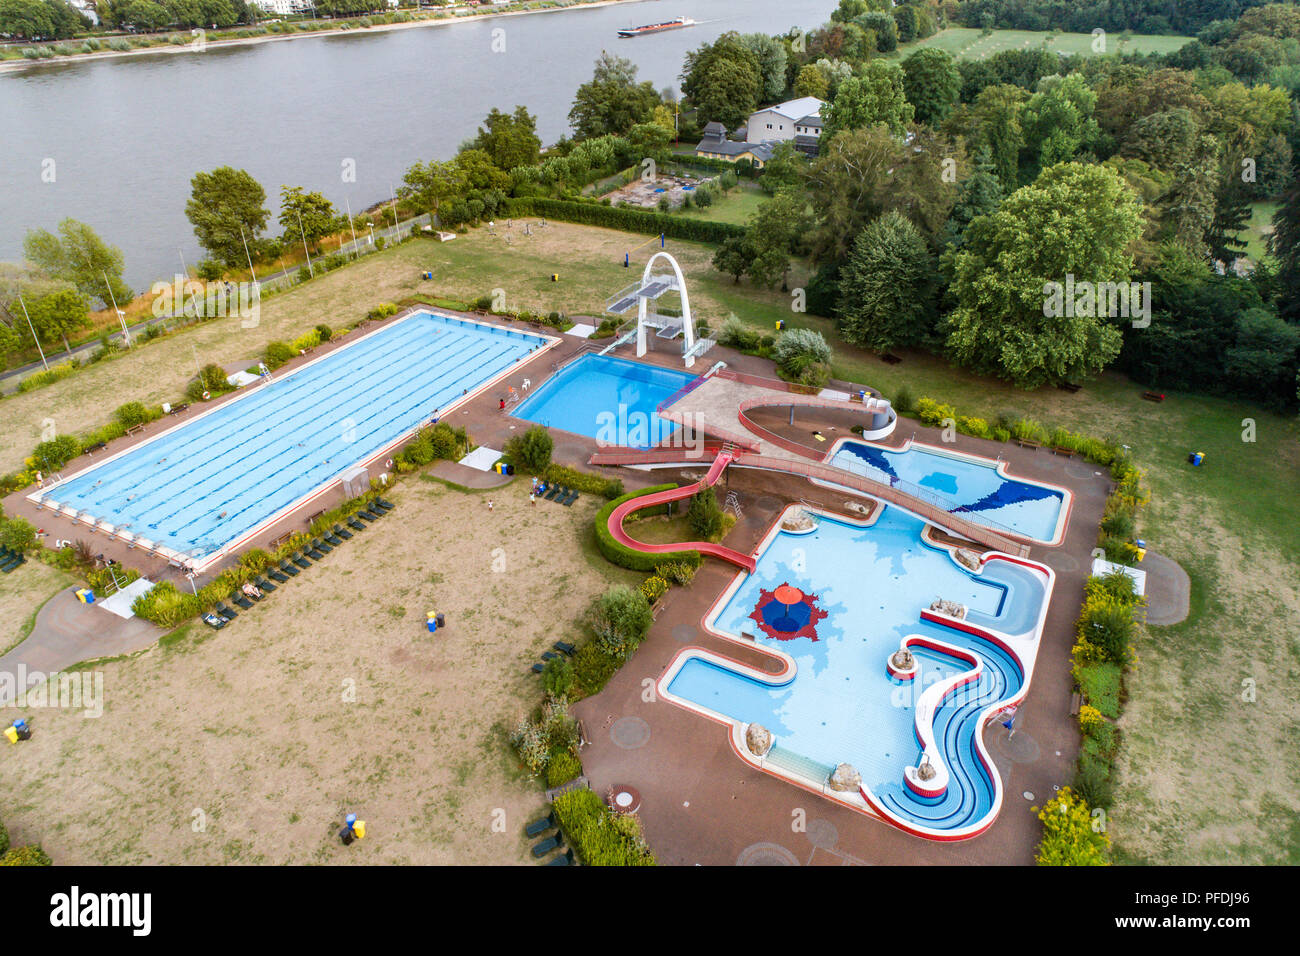 swimming pool aerial view stock photos swimming pool aerial view stock images alamy. Black Bedroom Furniture Sets. Home Design Ideas